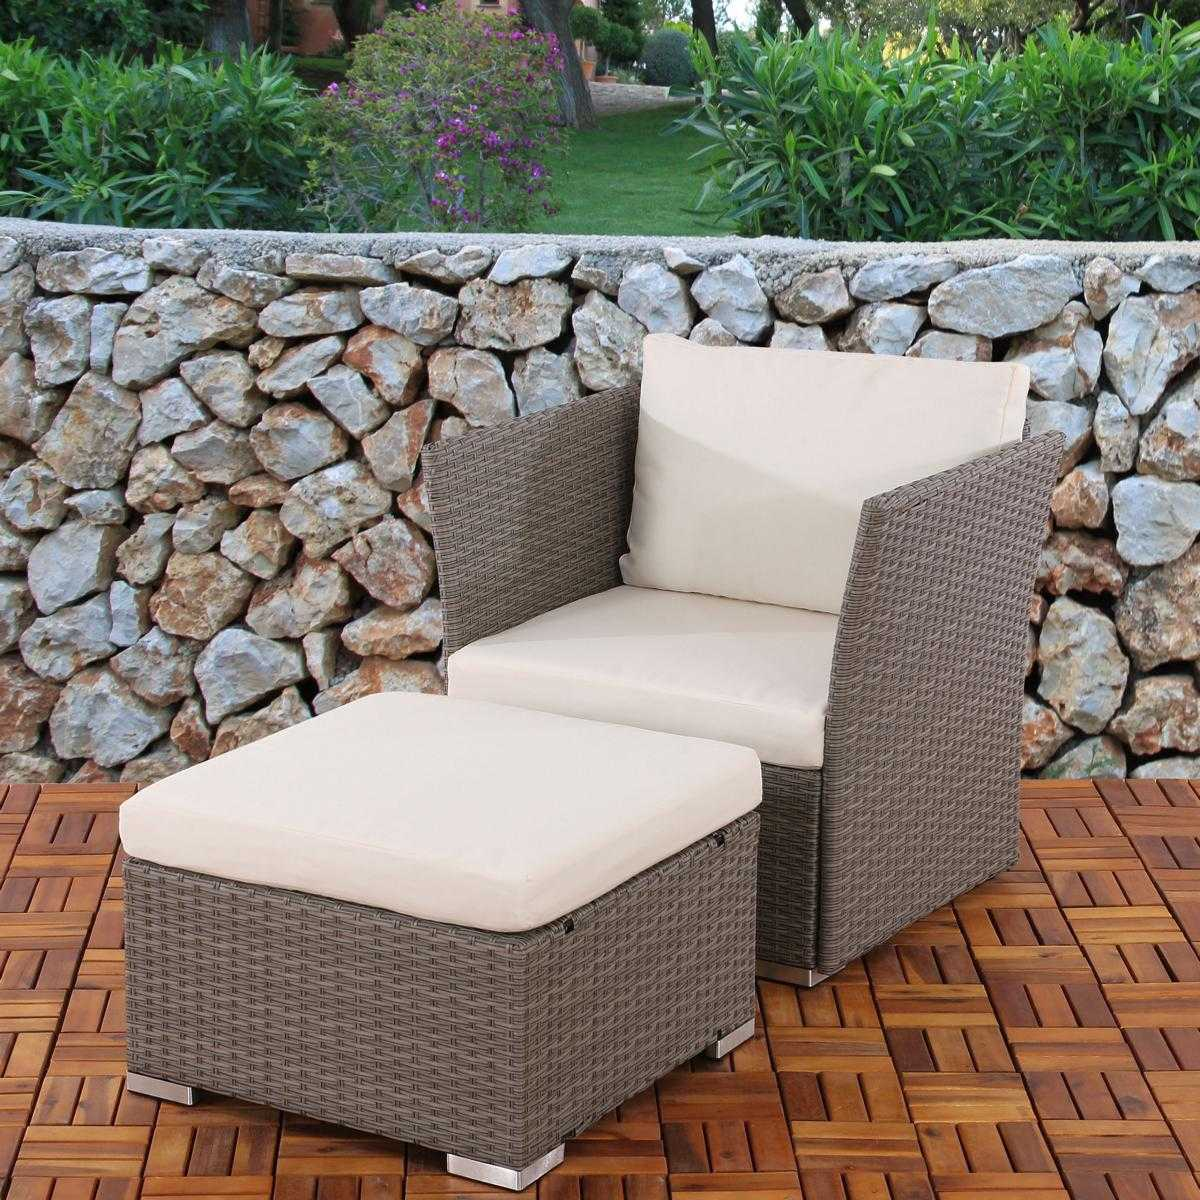 polyrattan grau creme garten sessel poly rattan gartensessel mit hocker ottomane ebay. Black Bedroom Furniture Sets. Home Design Ideas